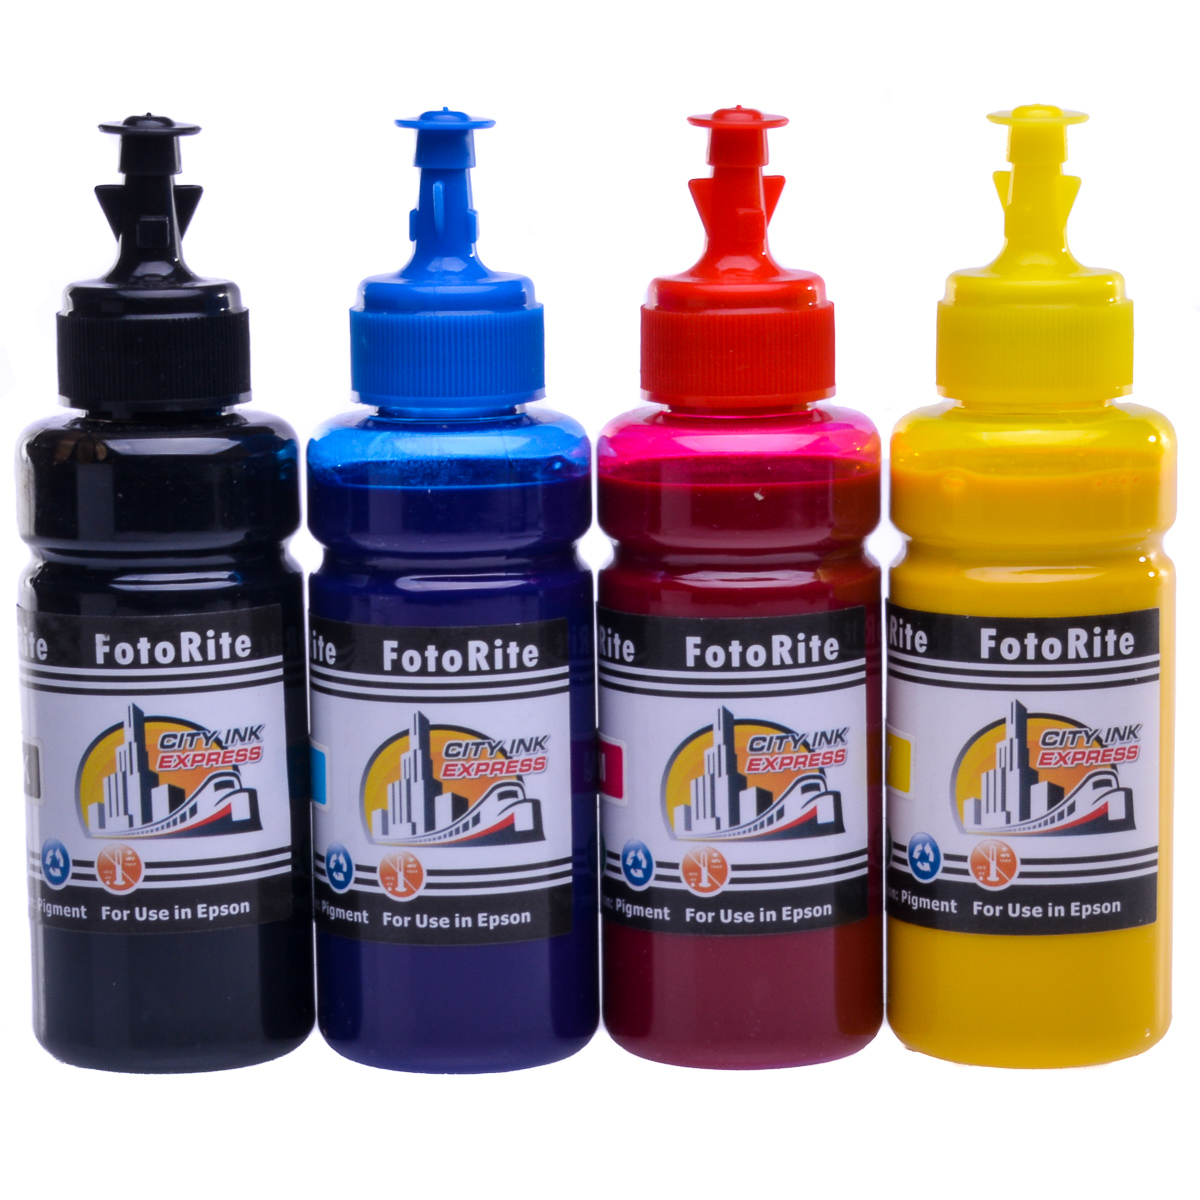 Cheap Multipack pigment ink refill replaces Epson WF-7610DWF